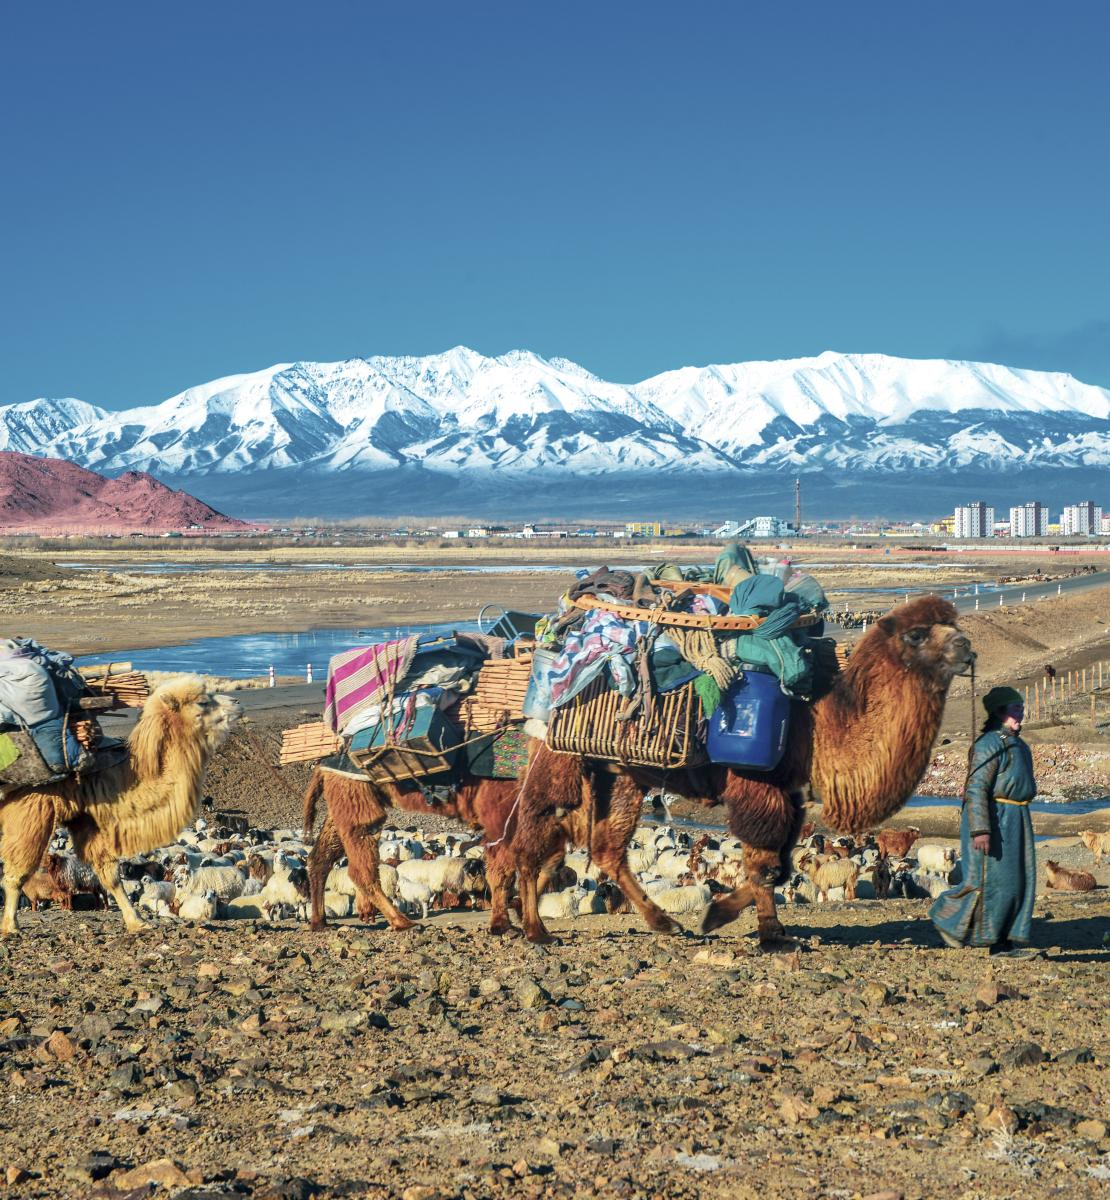 A person walks with several animals carrying supplies near a mountainous area.